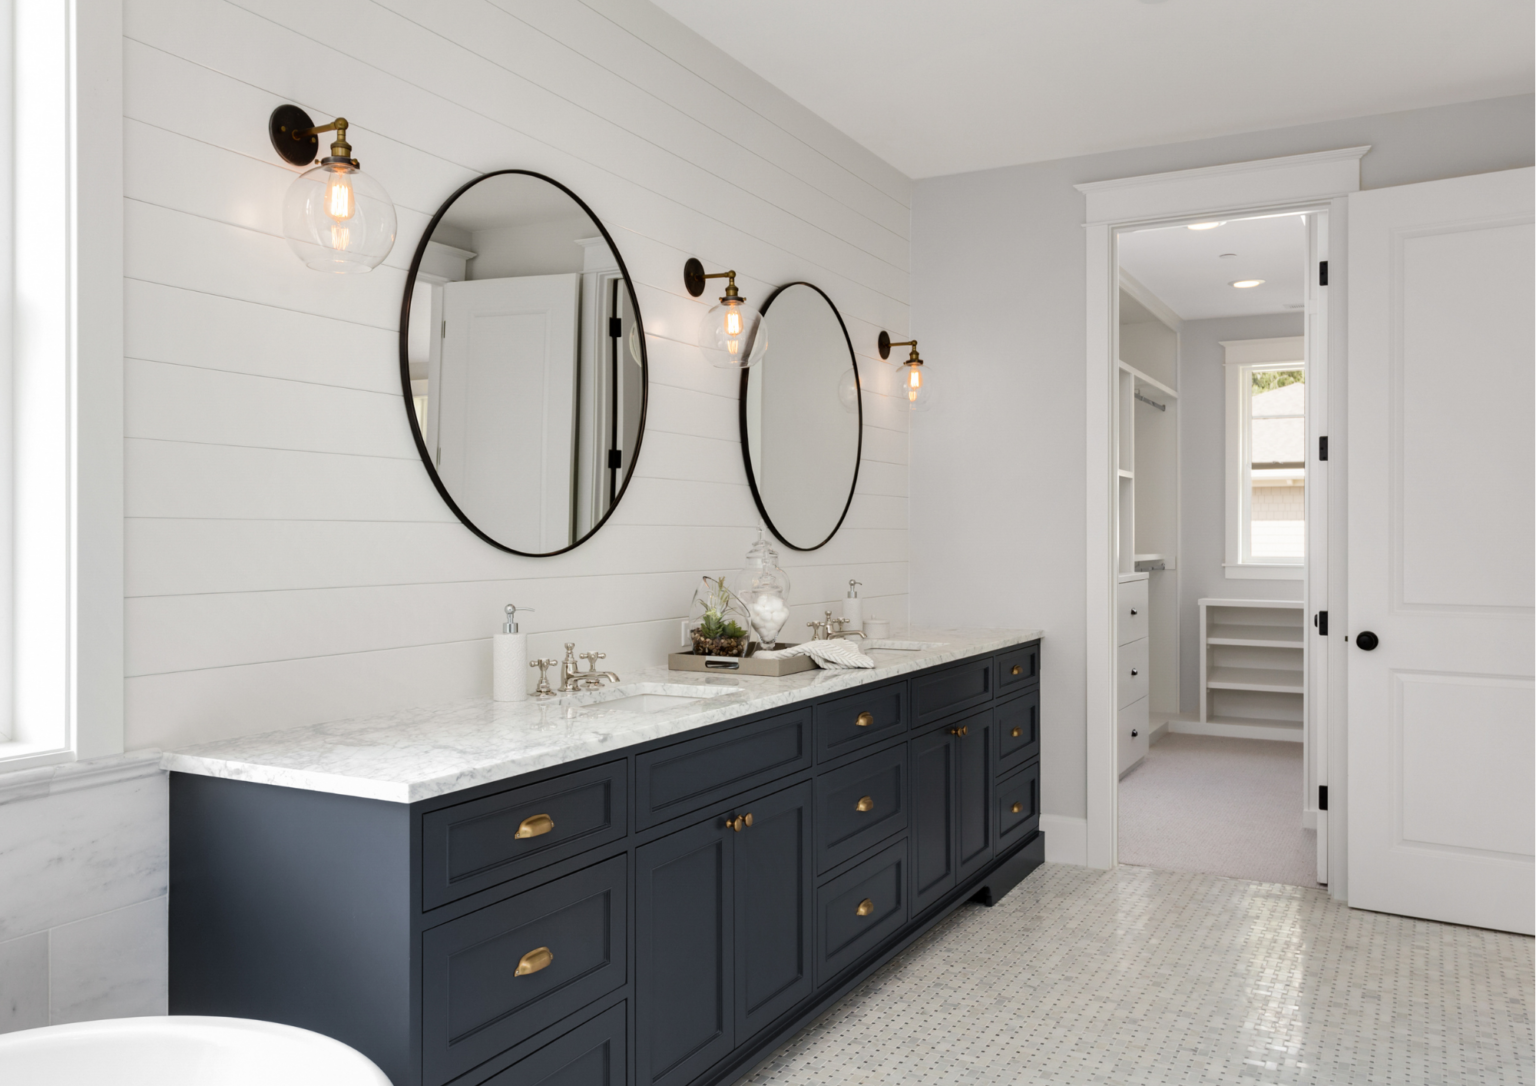 Luxury Modern Bathroom with Navy Cabinets